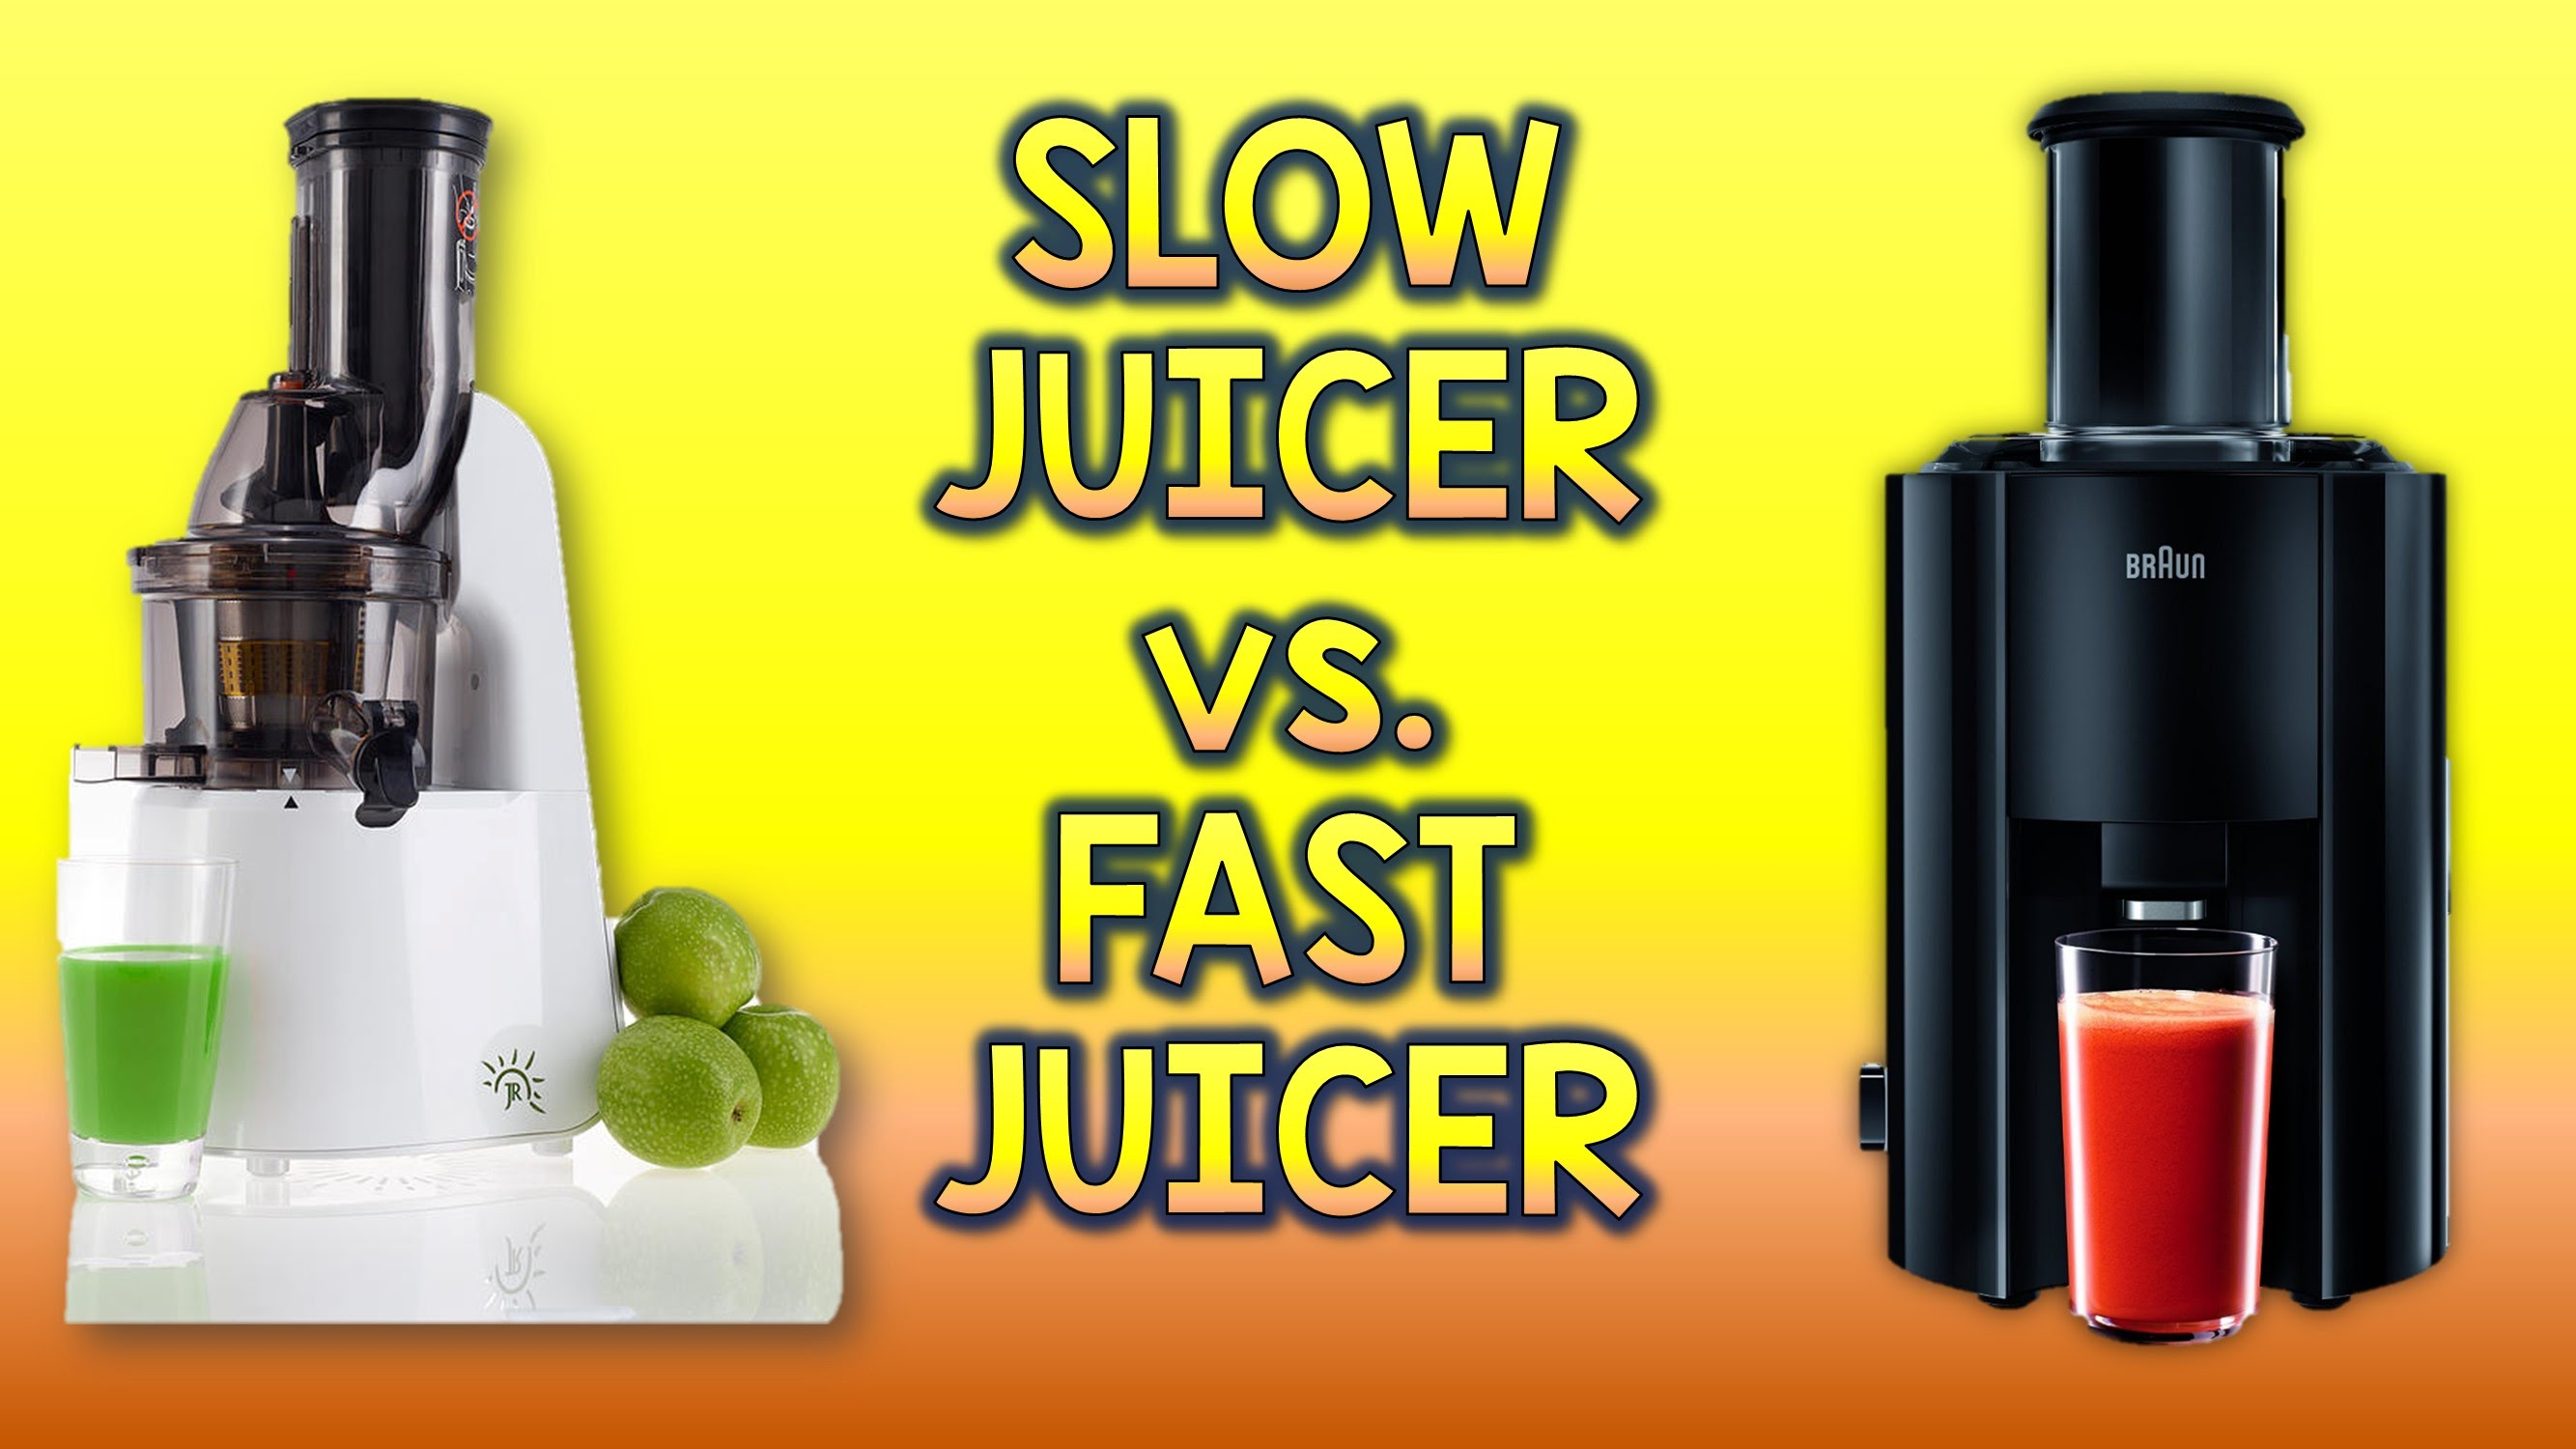 slow-vs-fast-juicer